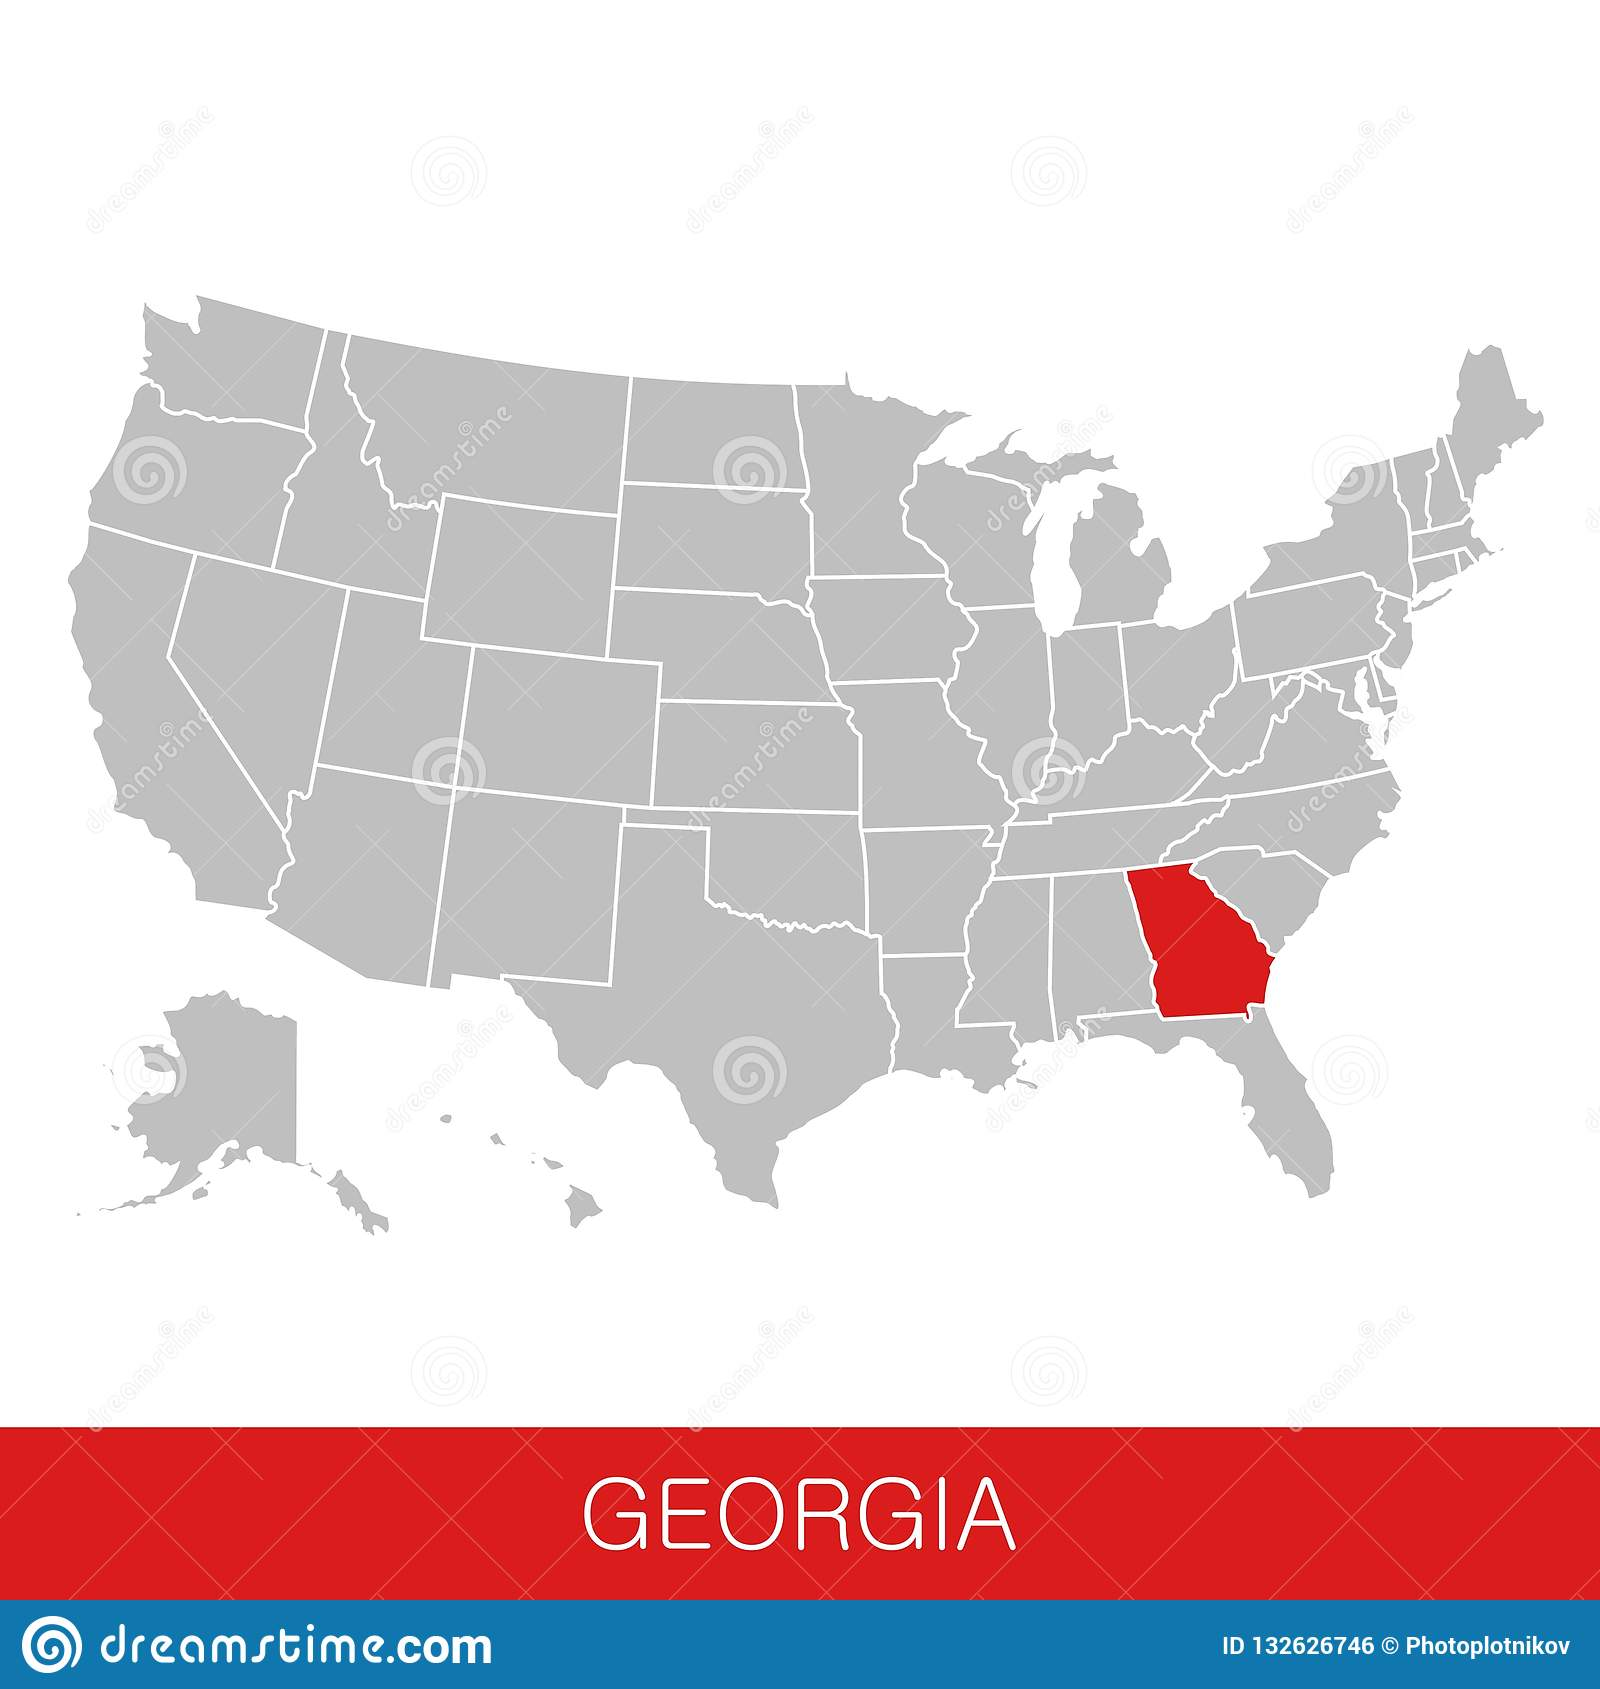 Map Of America Georgia.United States Of America With The State Of Georgia Selected Map Of